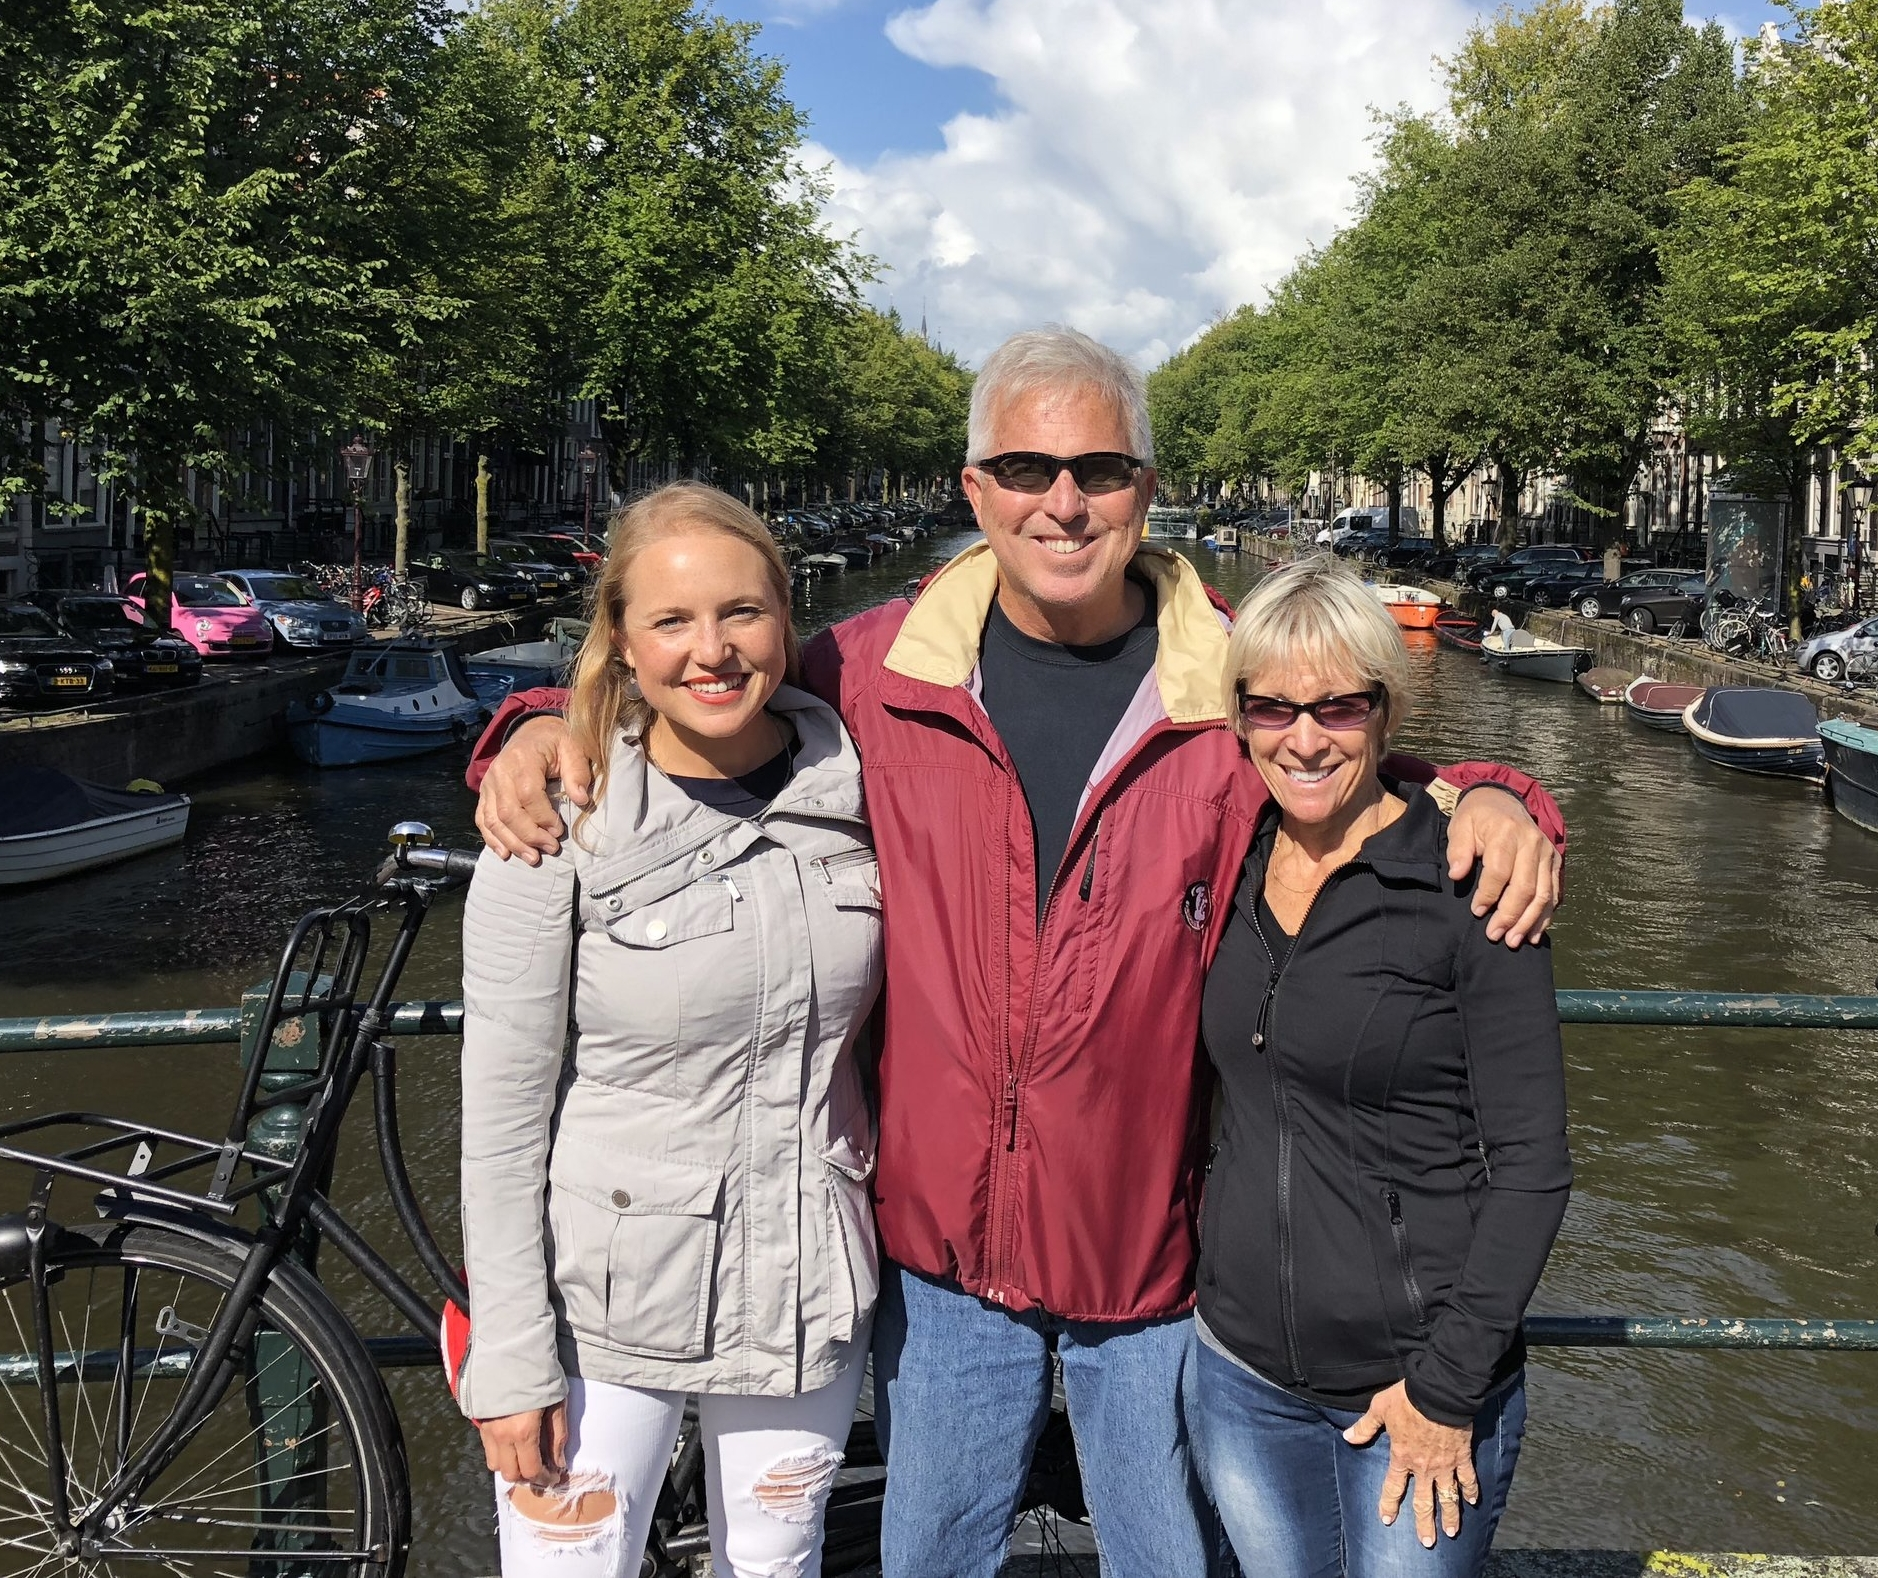 Meeting up with my parents in Amsterdam (August 2018)